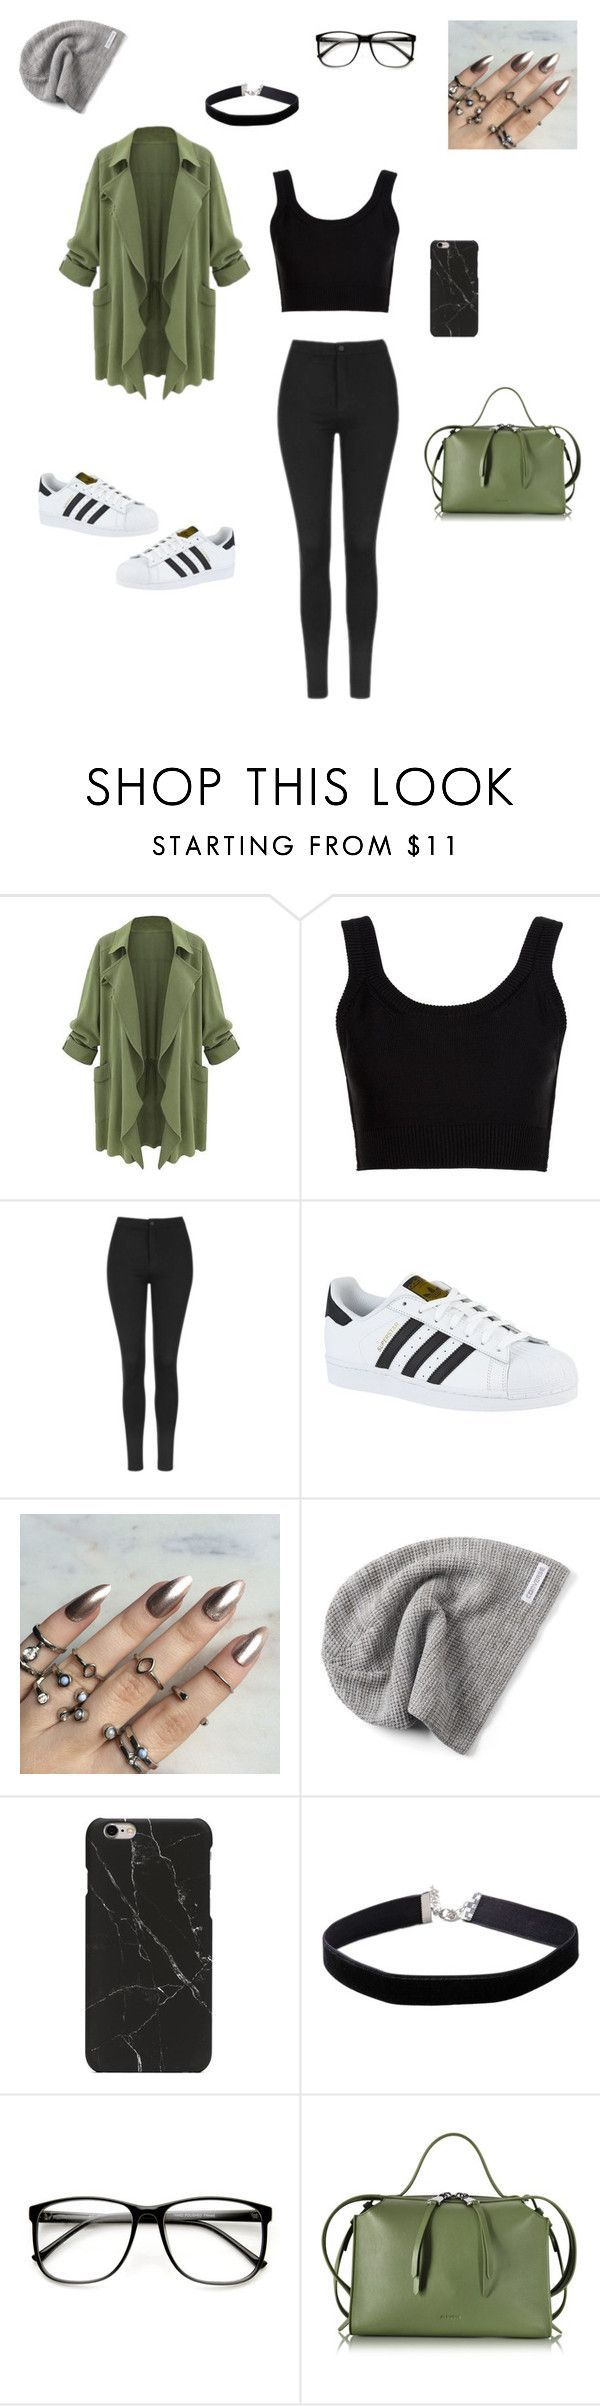 """""""The Girl With The Gray Beanie"""" by skylarmalibu ❤ liked on Polyvore featuring Calvin Klein Collection, Topshop, adidas, Converse, Miss Selfridge, ZeroUV and Jil Sander"""